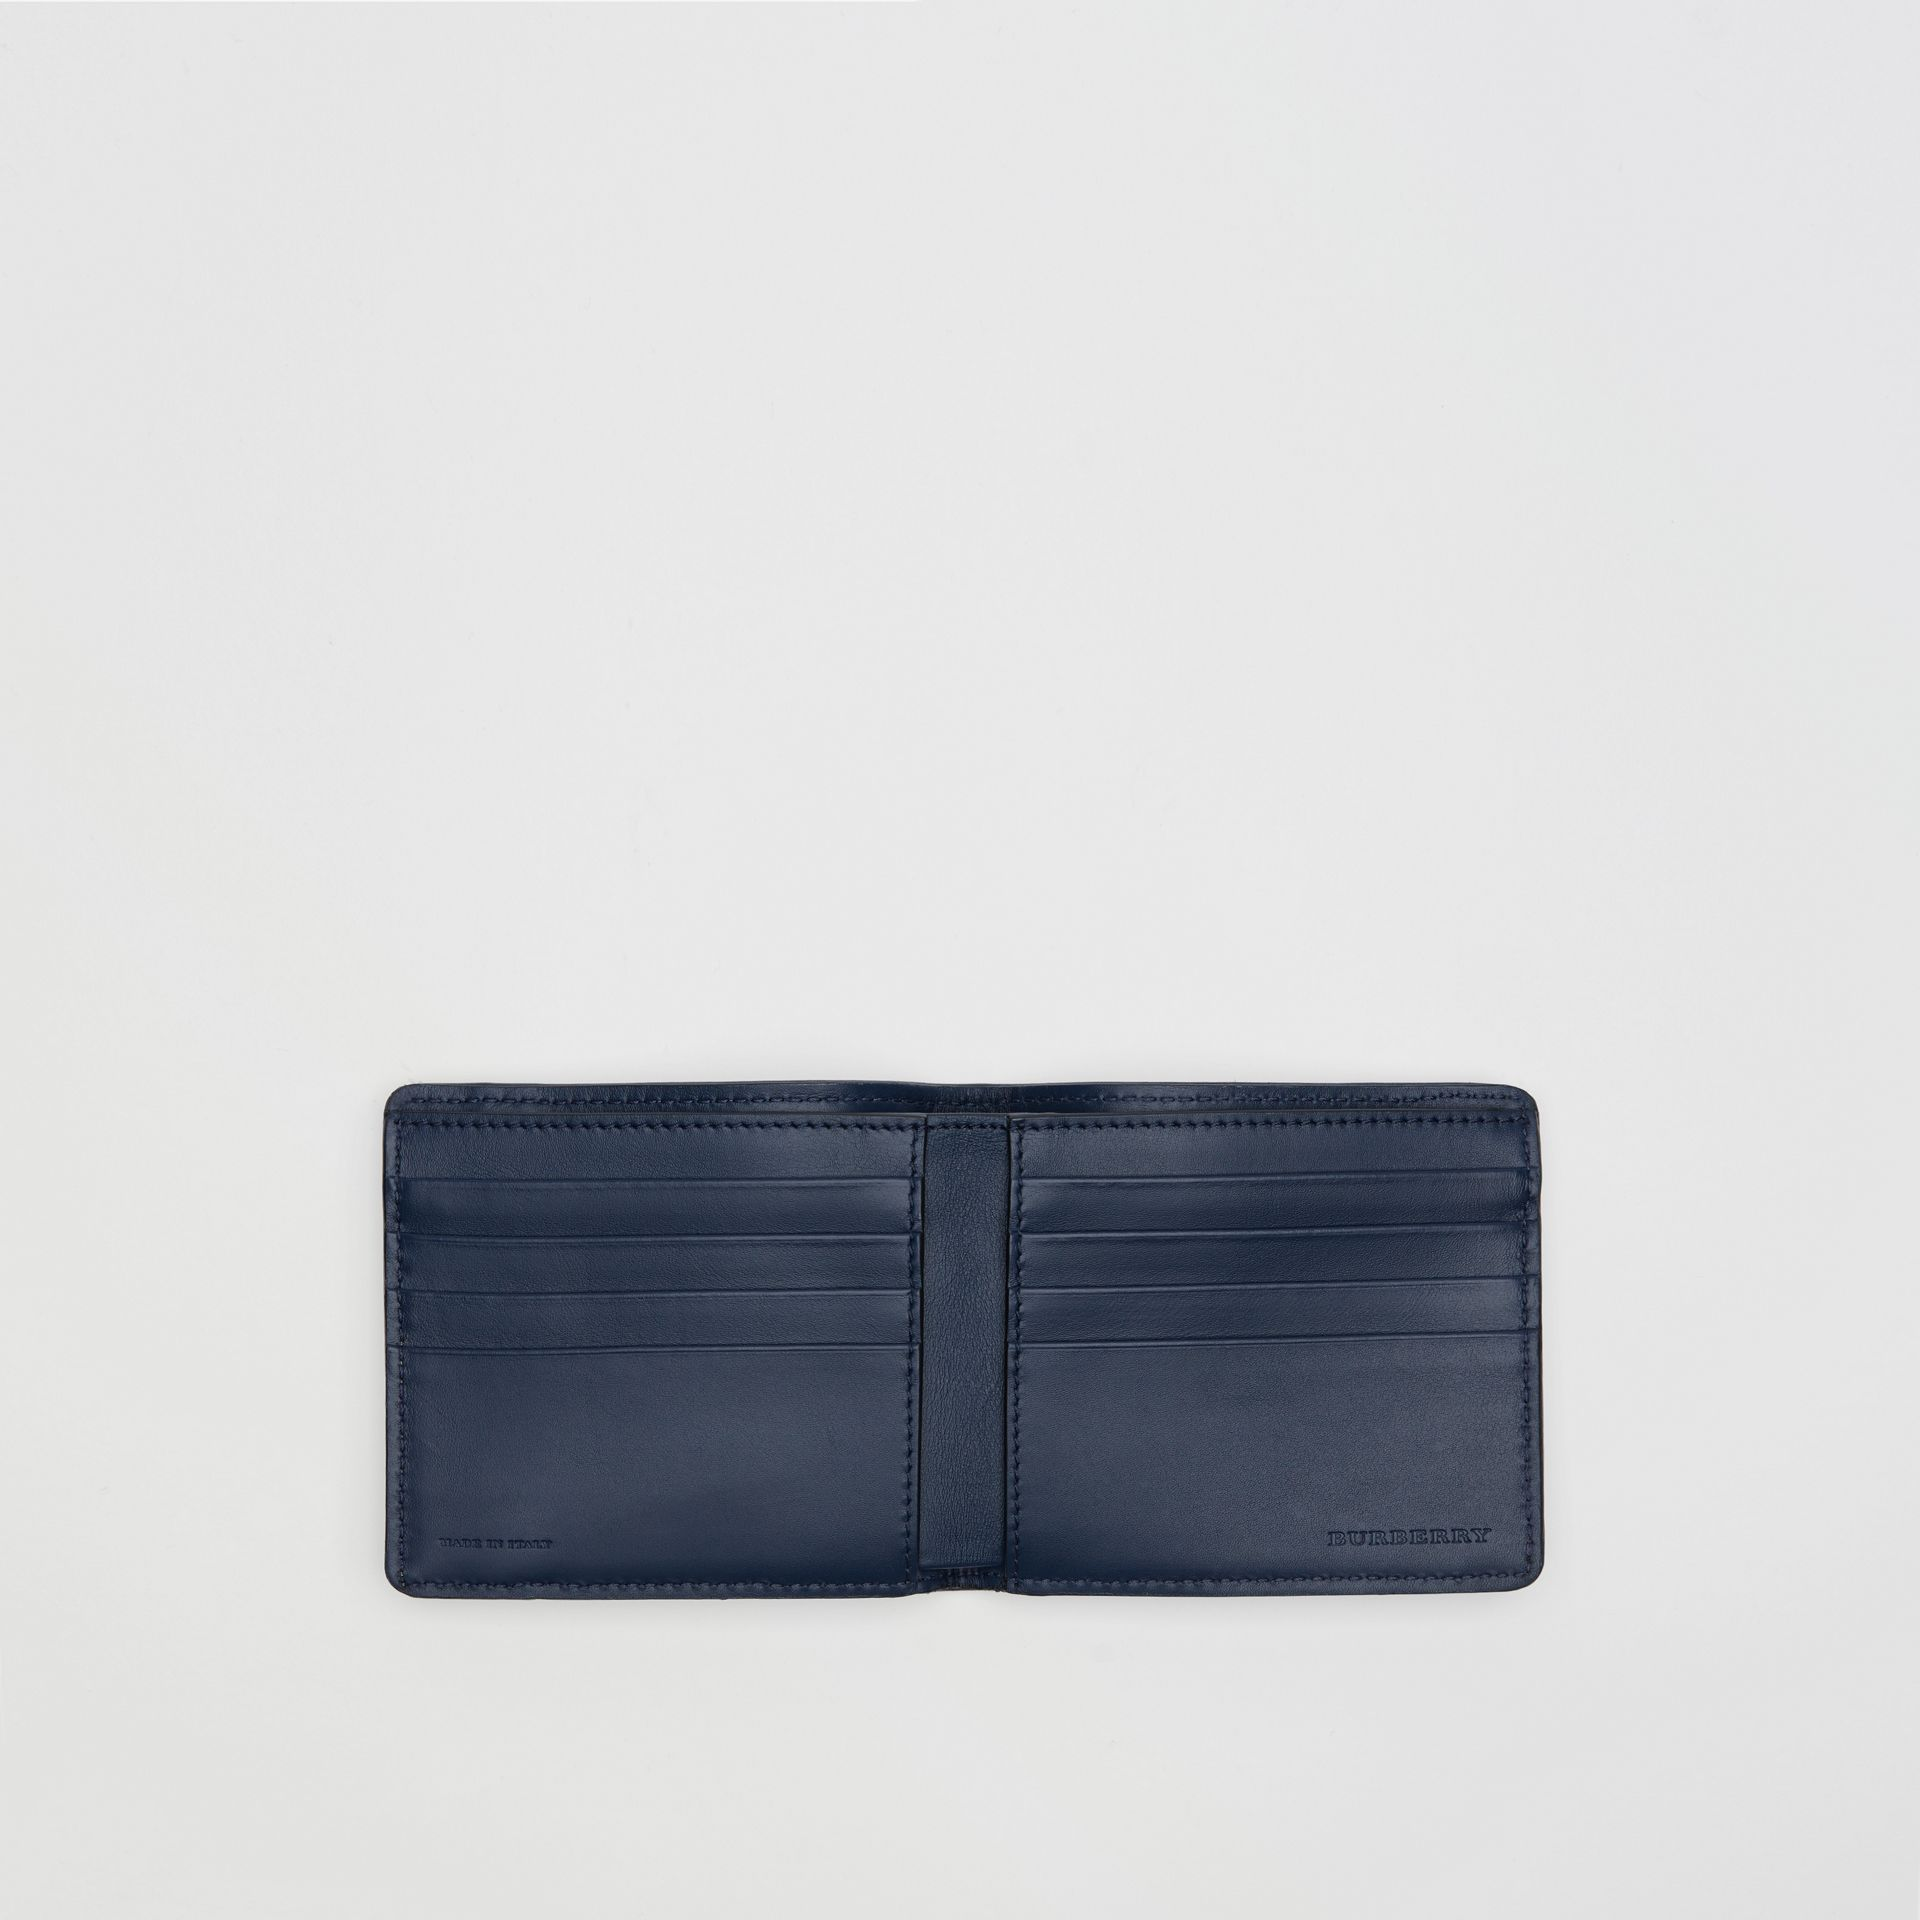 1983 Check and Leather International Bifold Wallet in Ink Blue - Men | Burberry Singapore - gallery image 3